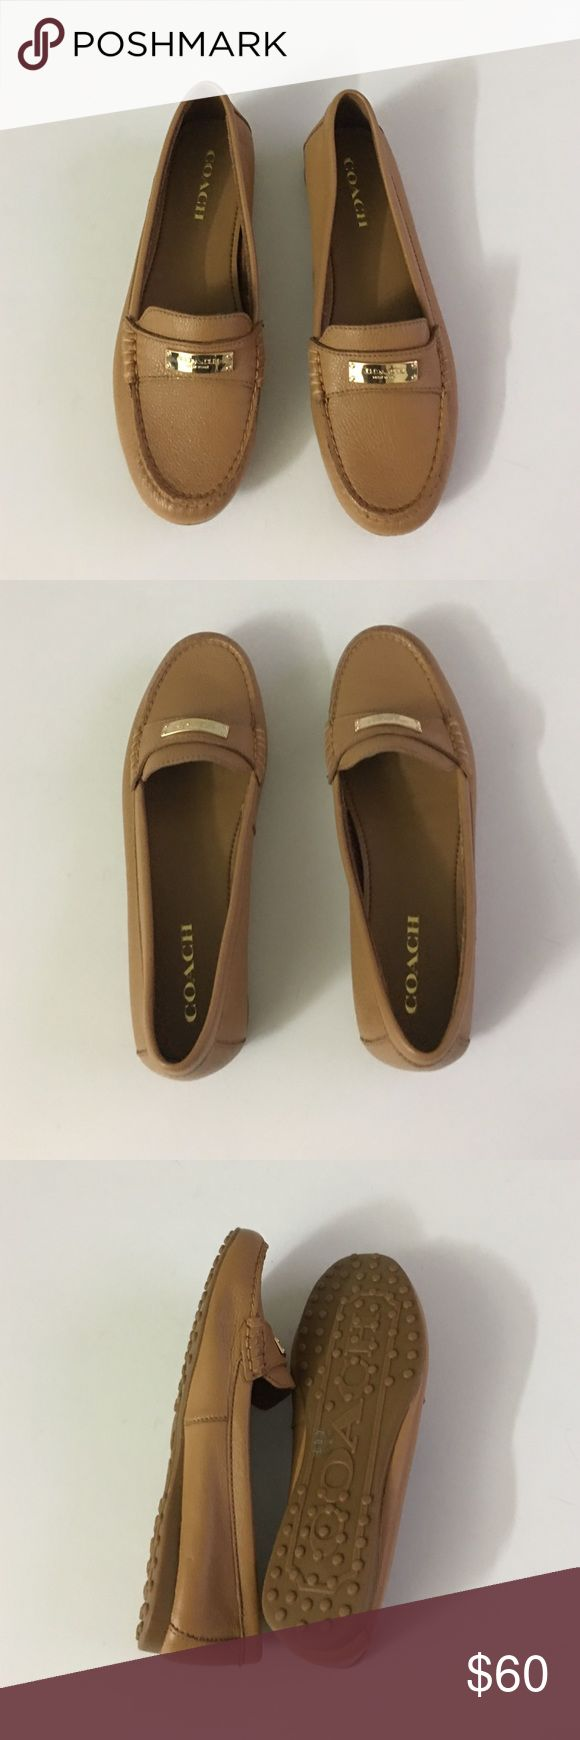 Coach flats new never used size 9.5 Coach flats new never used size 9.5 Coach Shoes Flats & Loafers